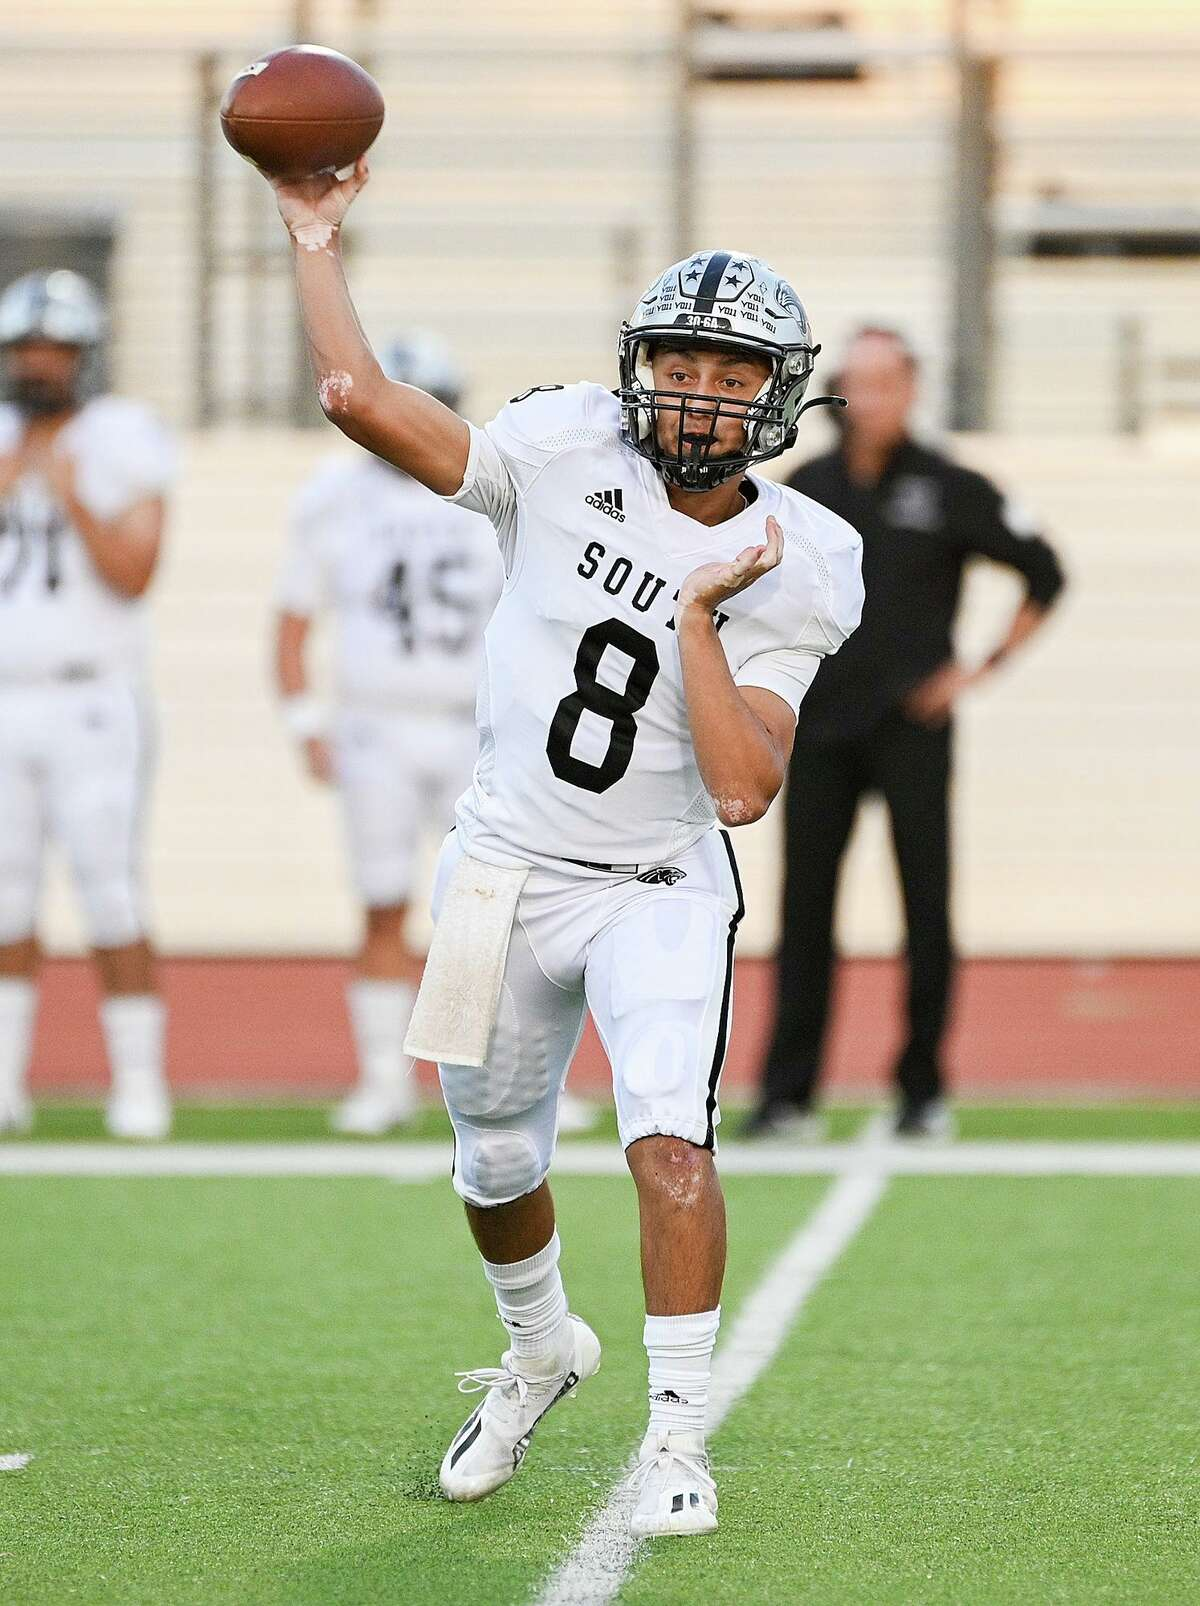 Luis Cisneros, United South QB The Panthers knew Luis Cisneros could be a difference maker this year. And through six games of his varsity career, Cisneros has proven his coaches and teammates right. The sophomore gunslinger has arguably the best arm in Laredo as he has completed 65.4 percent of his passes for 1,121 yards, nine touchdowns and a mere two interceptions. His performance has earned him a 109.2 quarterback rating, according to United South coaches. Cisneros tried out for United South's football team as a freshman, but the coaches felt he was too raw and didn't make the roster. So, Cisneros decided to hone his skills at home by doing passing drills in his family's backyard. His hard work has paid off this year as he has completely transformed the Panther offense. If he continues his current trajectory, Cisneros could easily walk away with the All-City MVP award.